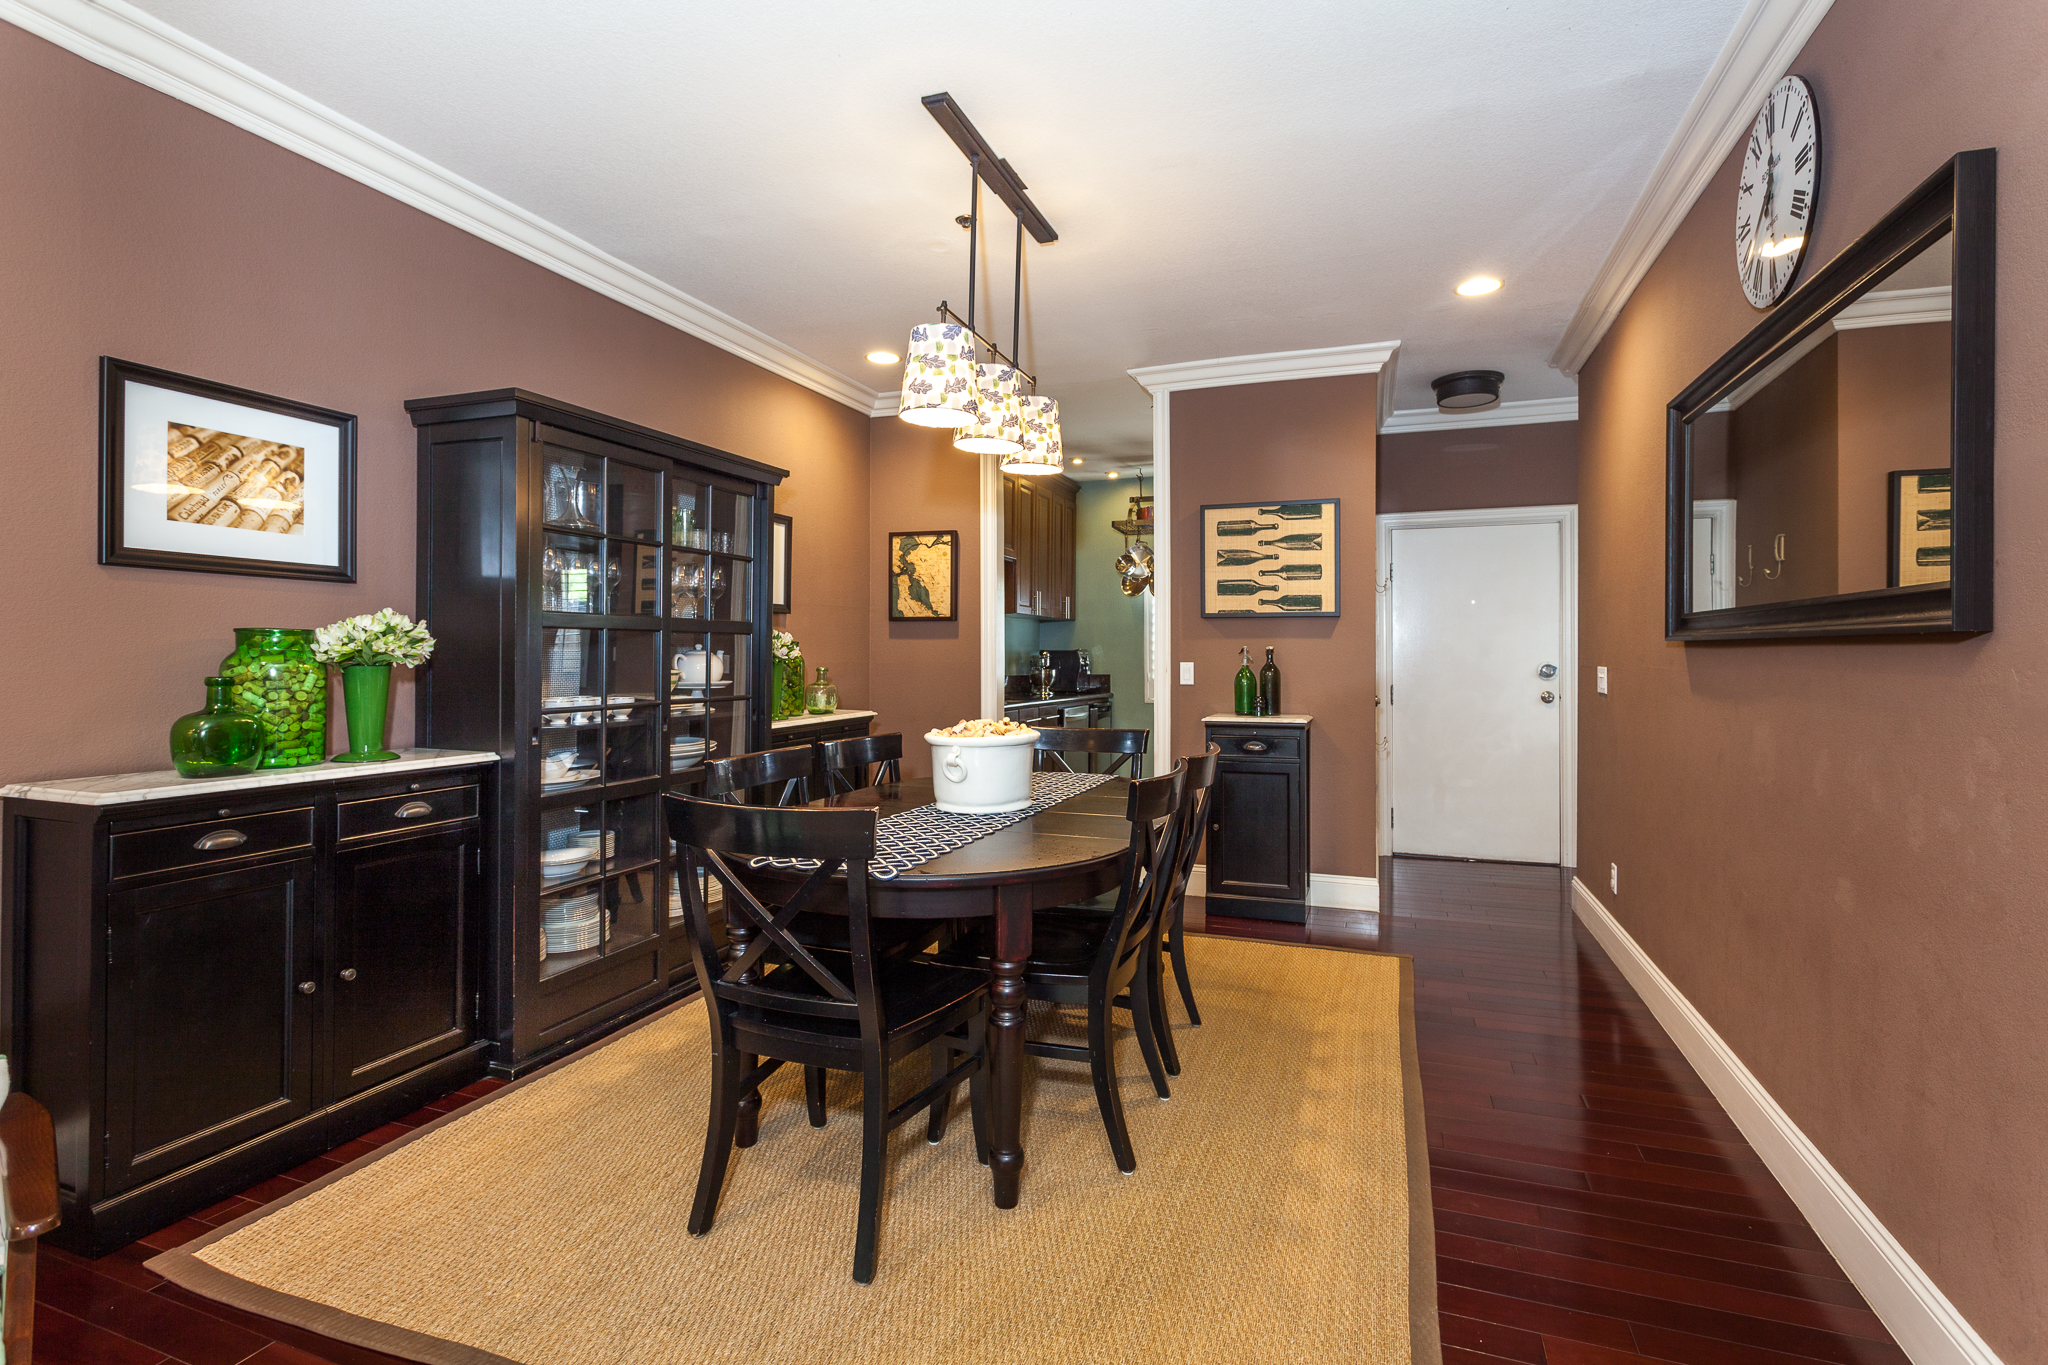 mls real estate photography